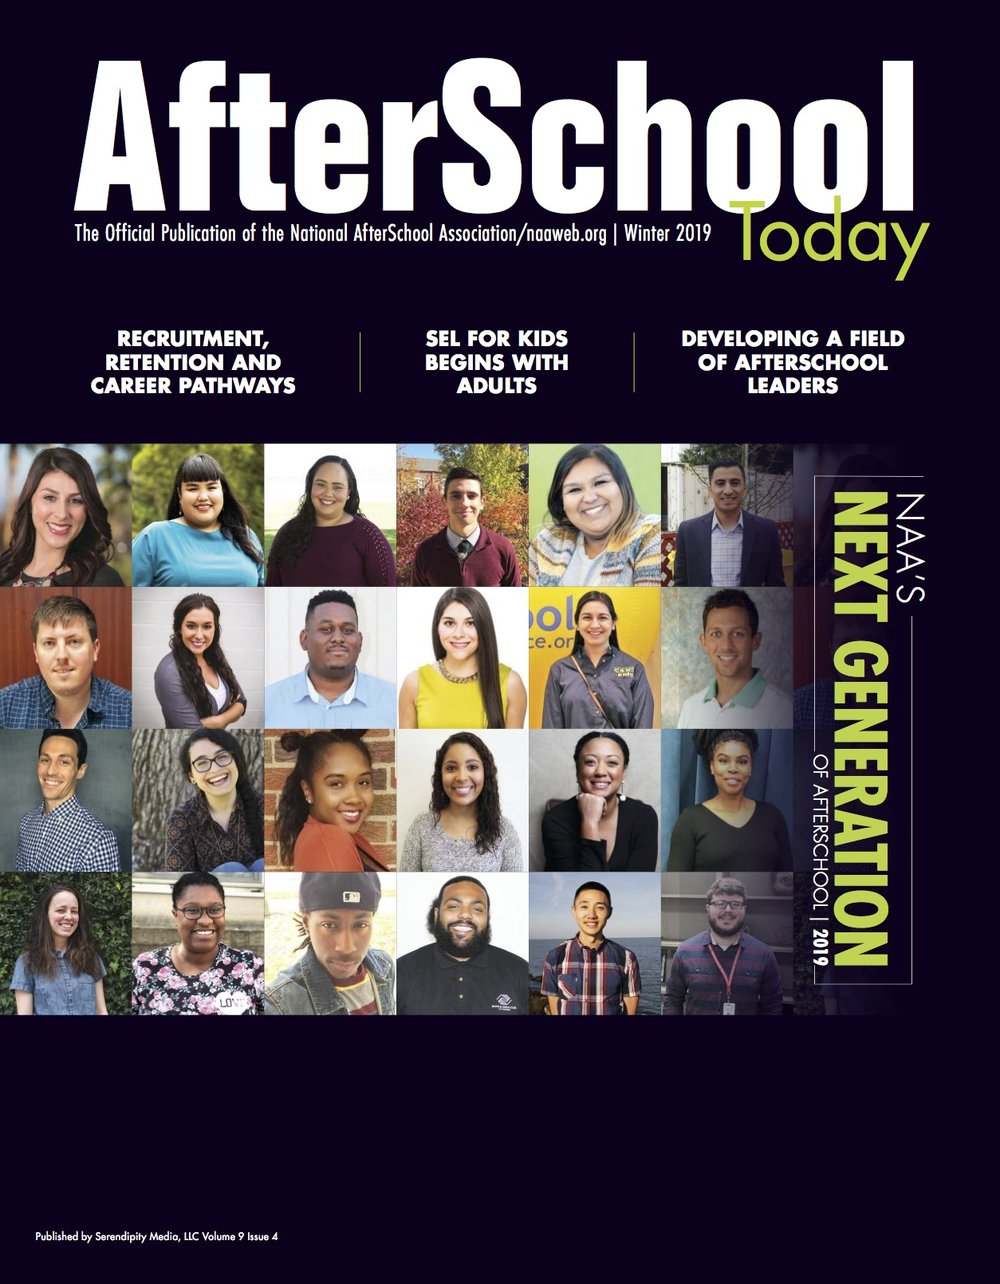 NAA Afterschool Today 2019 Cover 1.jpg